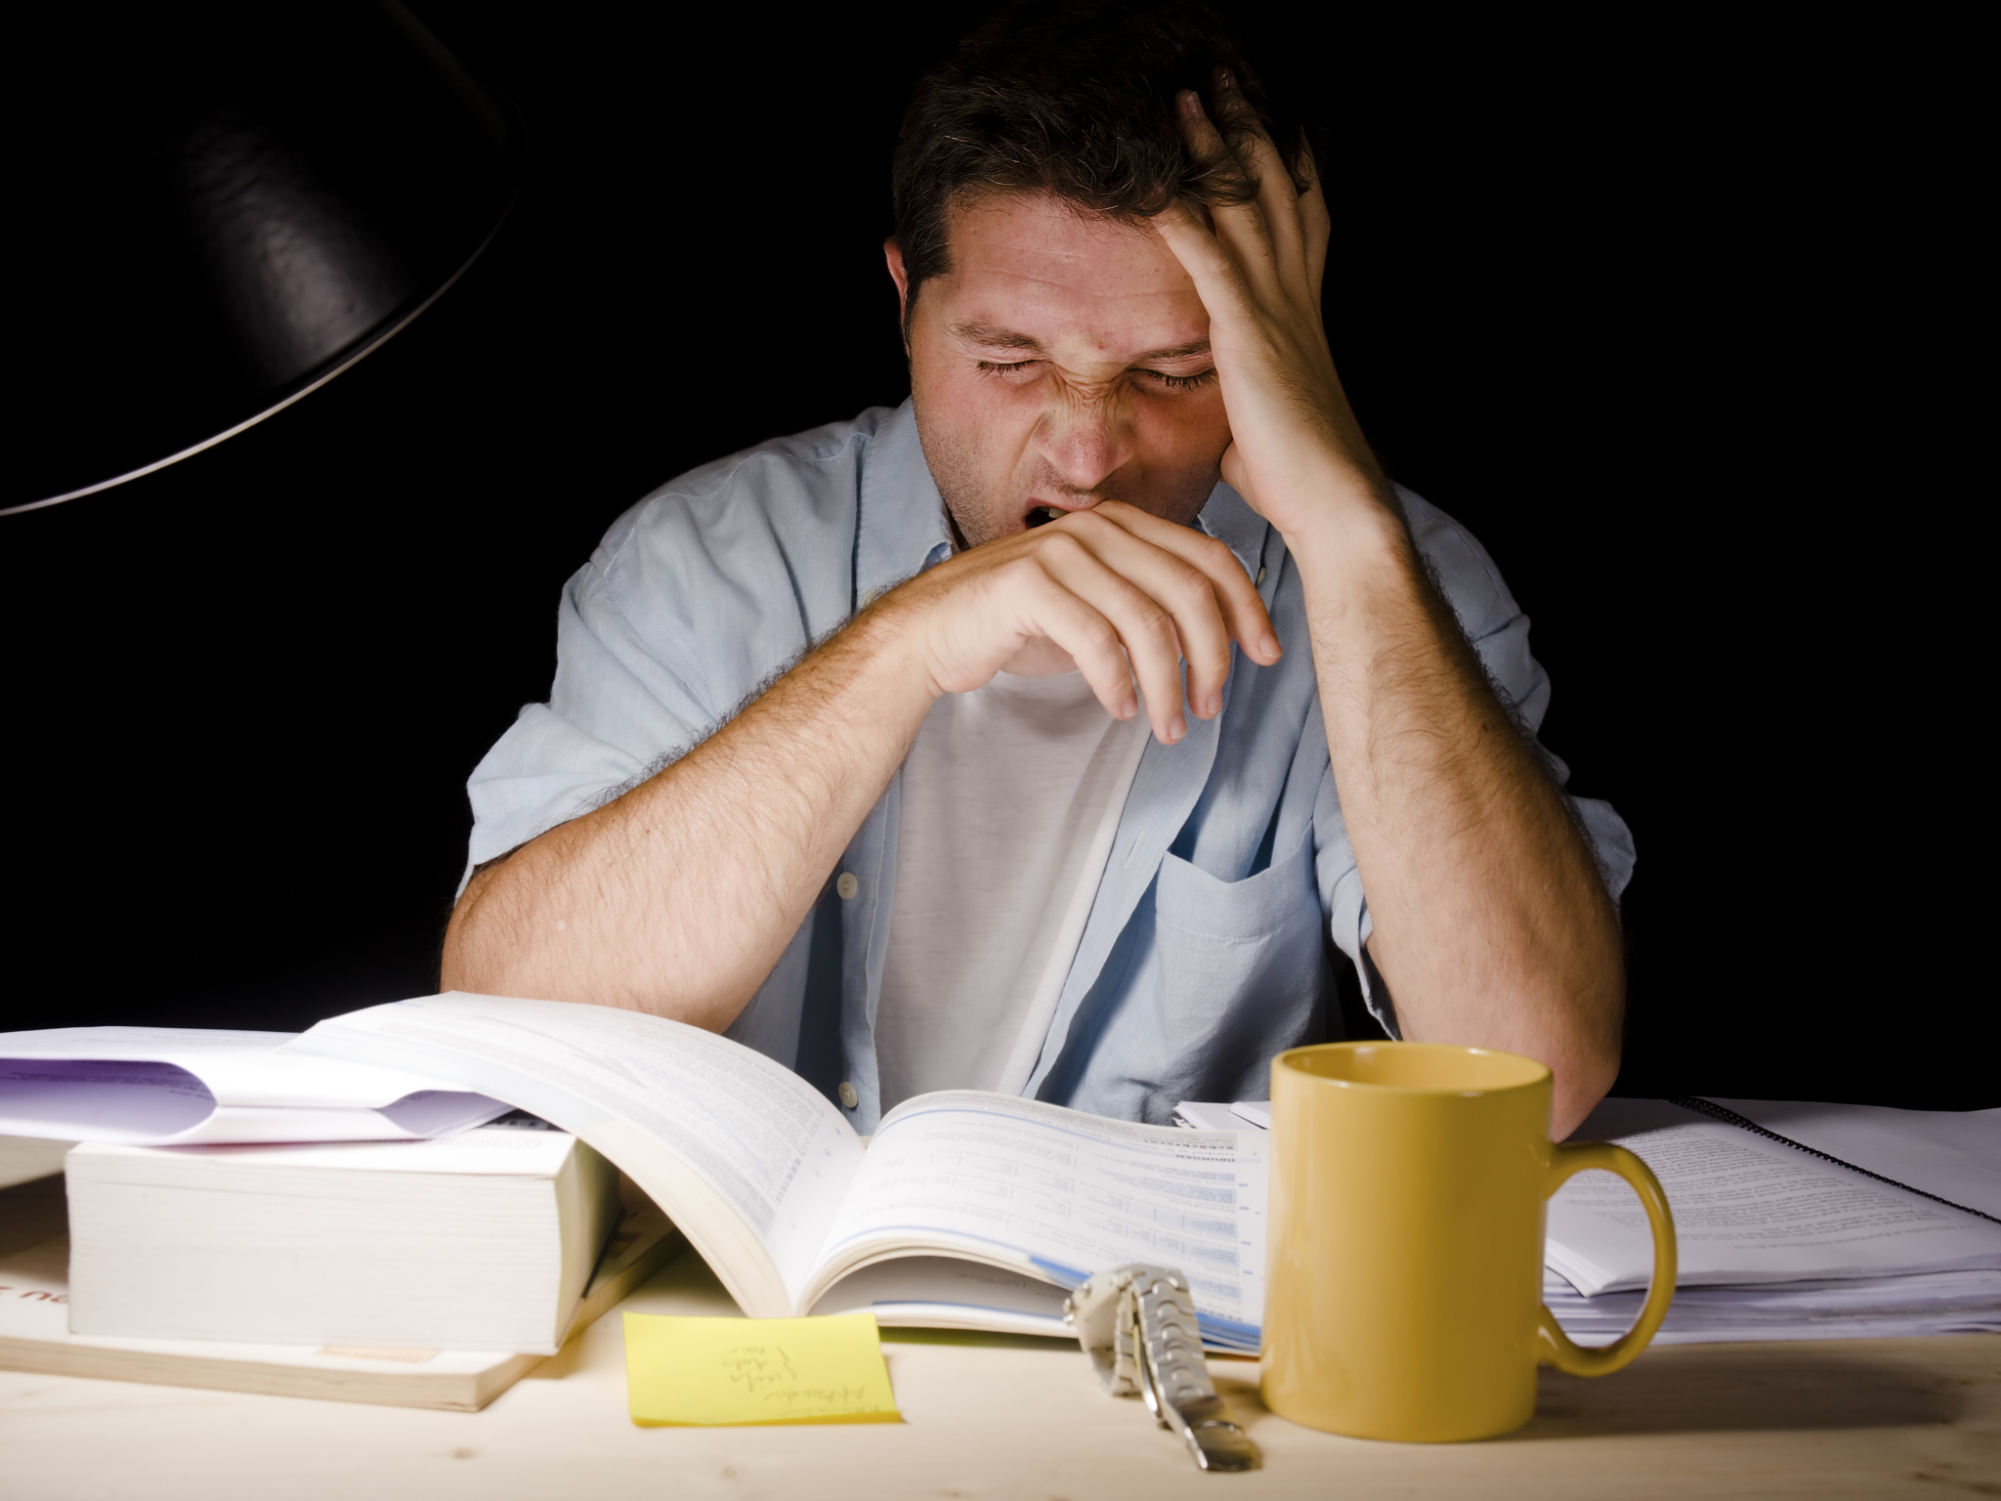 Study: Inconsistent sleep can lead to weight gain in college